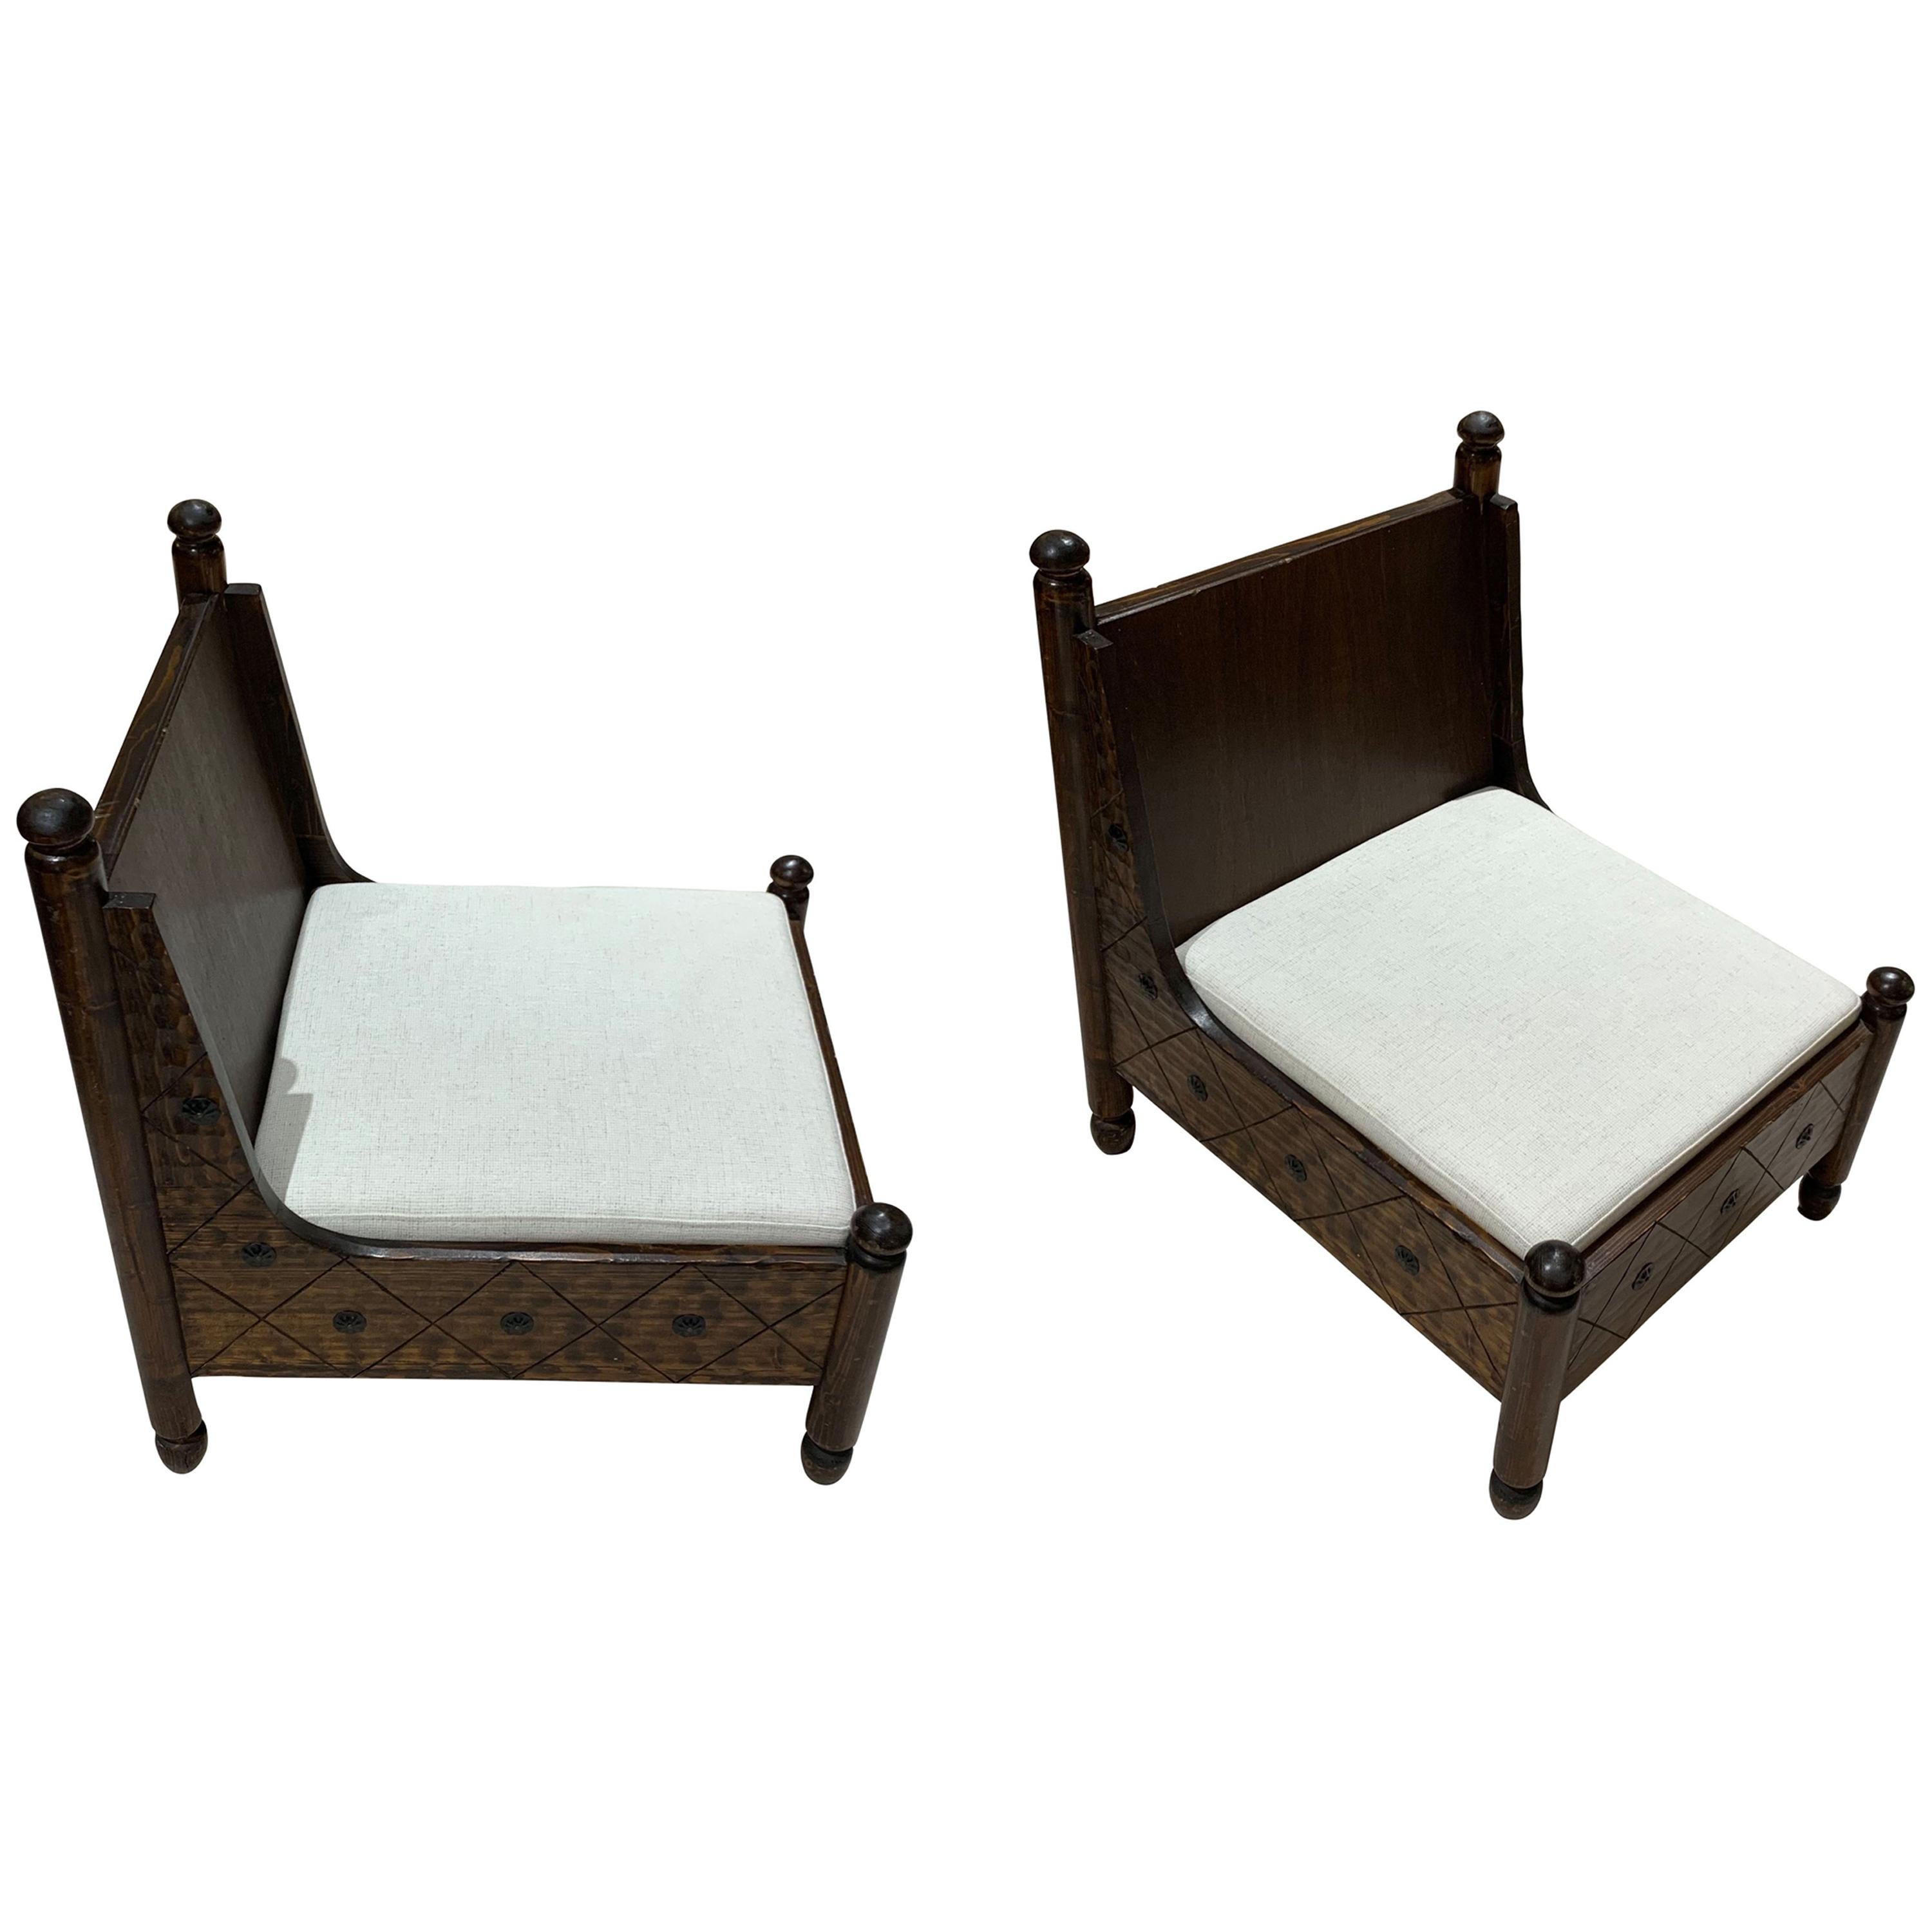 Italian Decorative Motif Pair of Oak Pull Up Side Chairs, 1960s